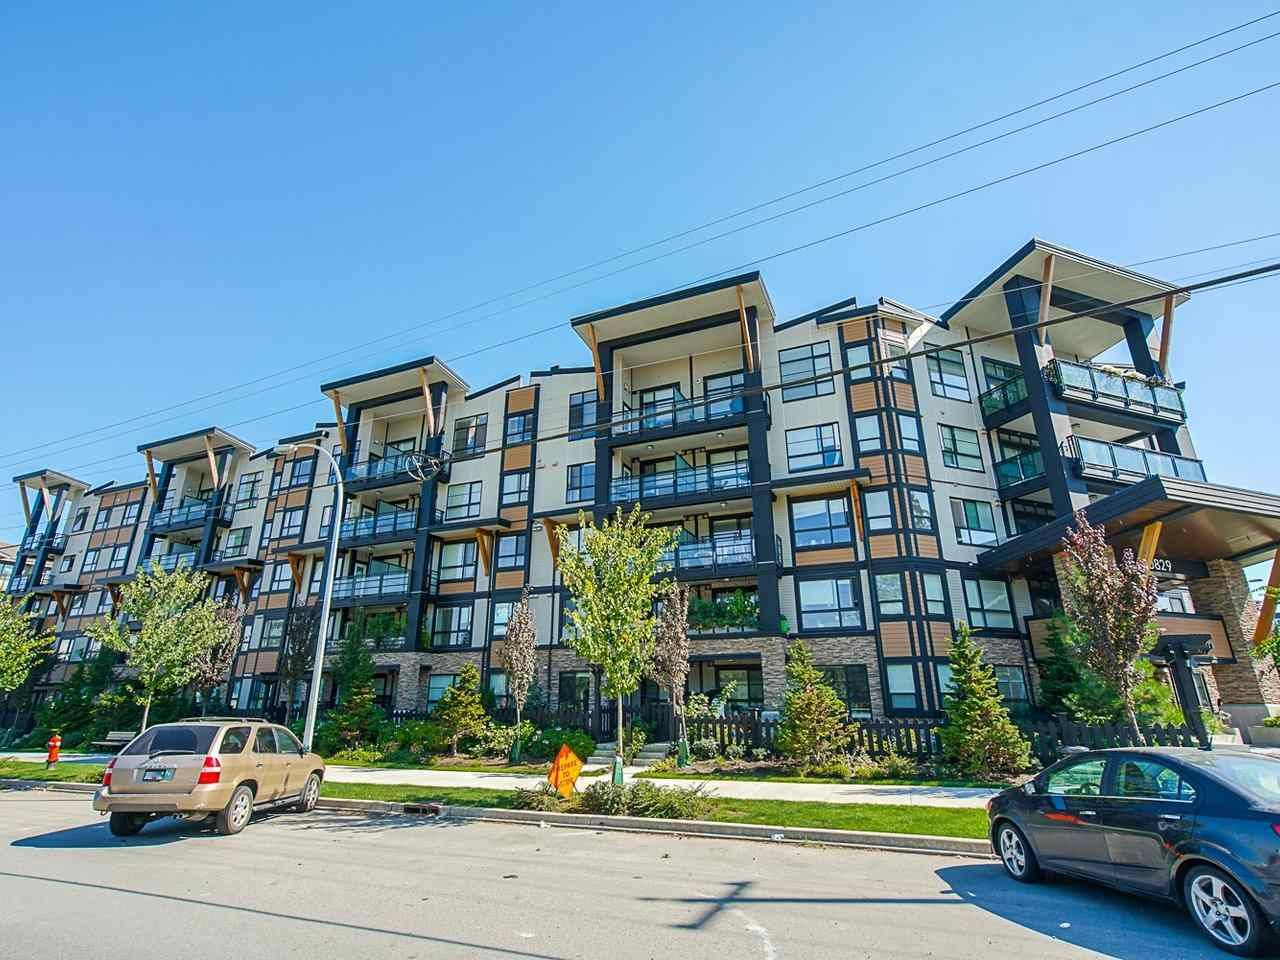 """Main Photo: 310 20829 77A Avenue in Langley: Willoughby Heights Condo for sale in """"THE WEX"""" : MLS®# R2495955"""